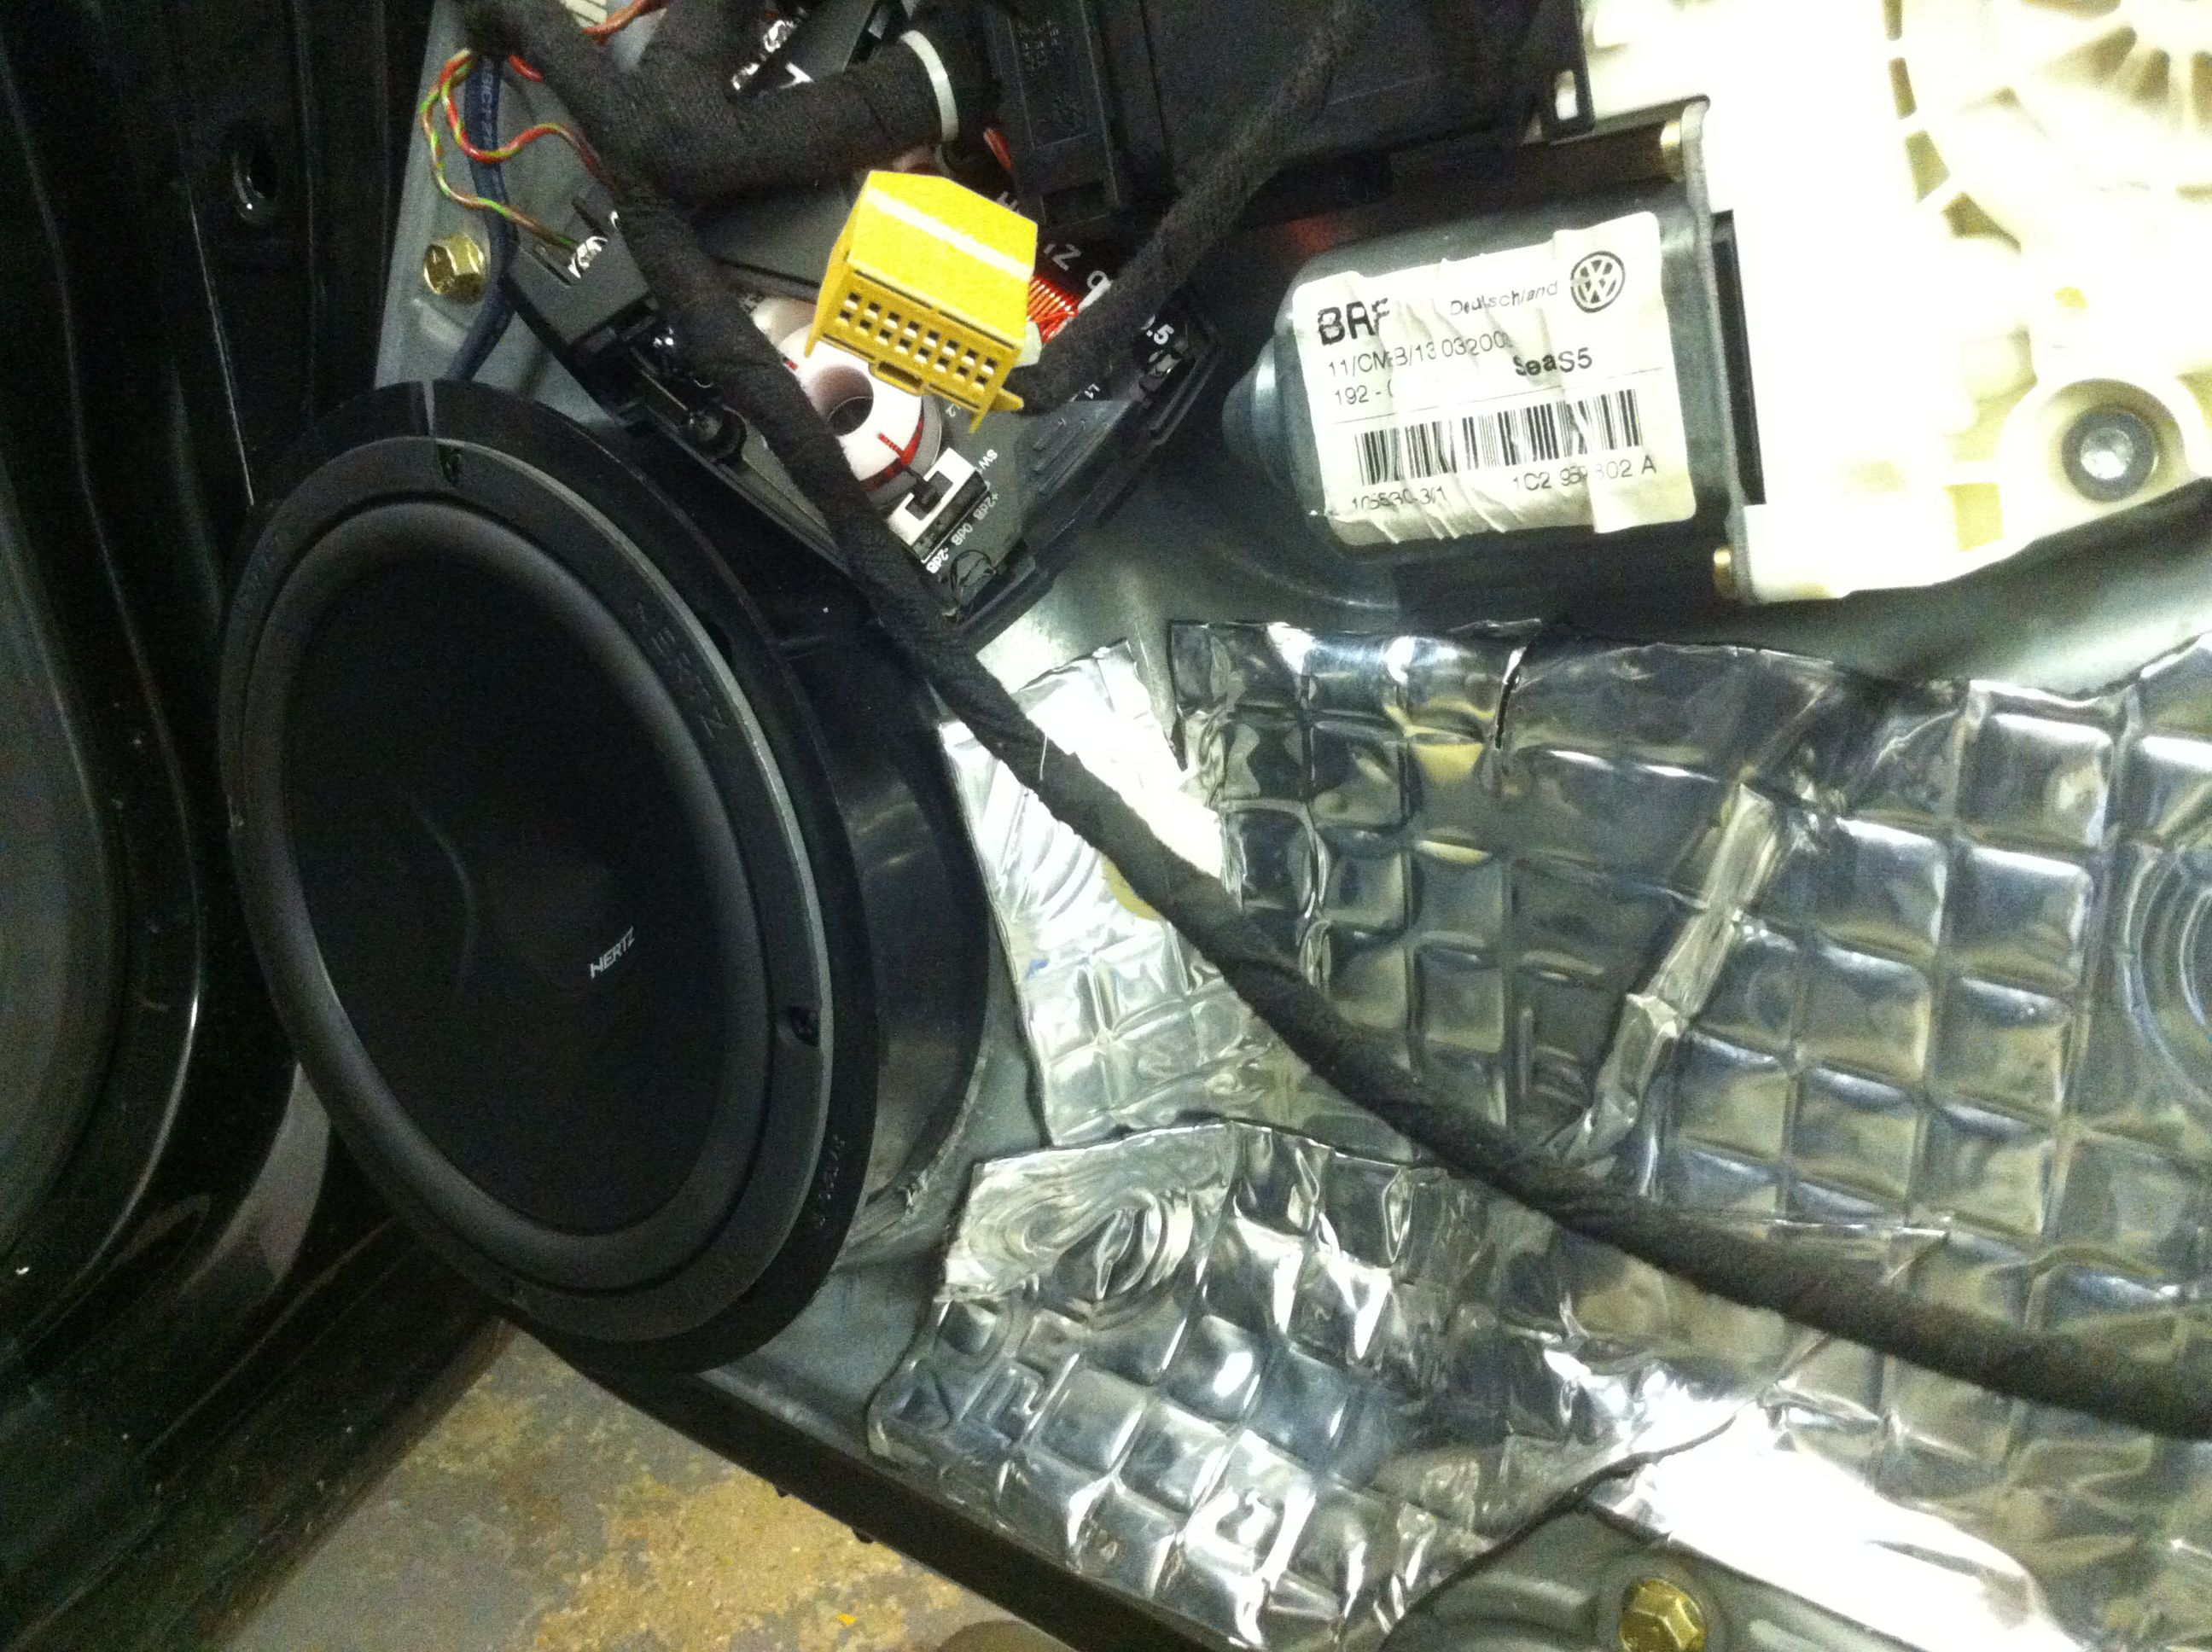 Hertz audio speakers with soundproofing installed in a seat leon cupra r